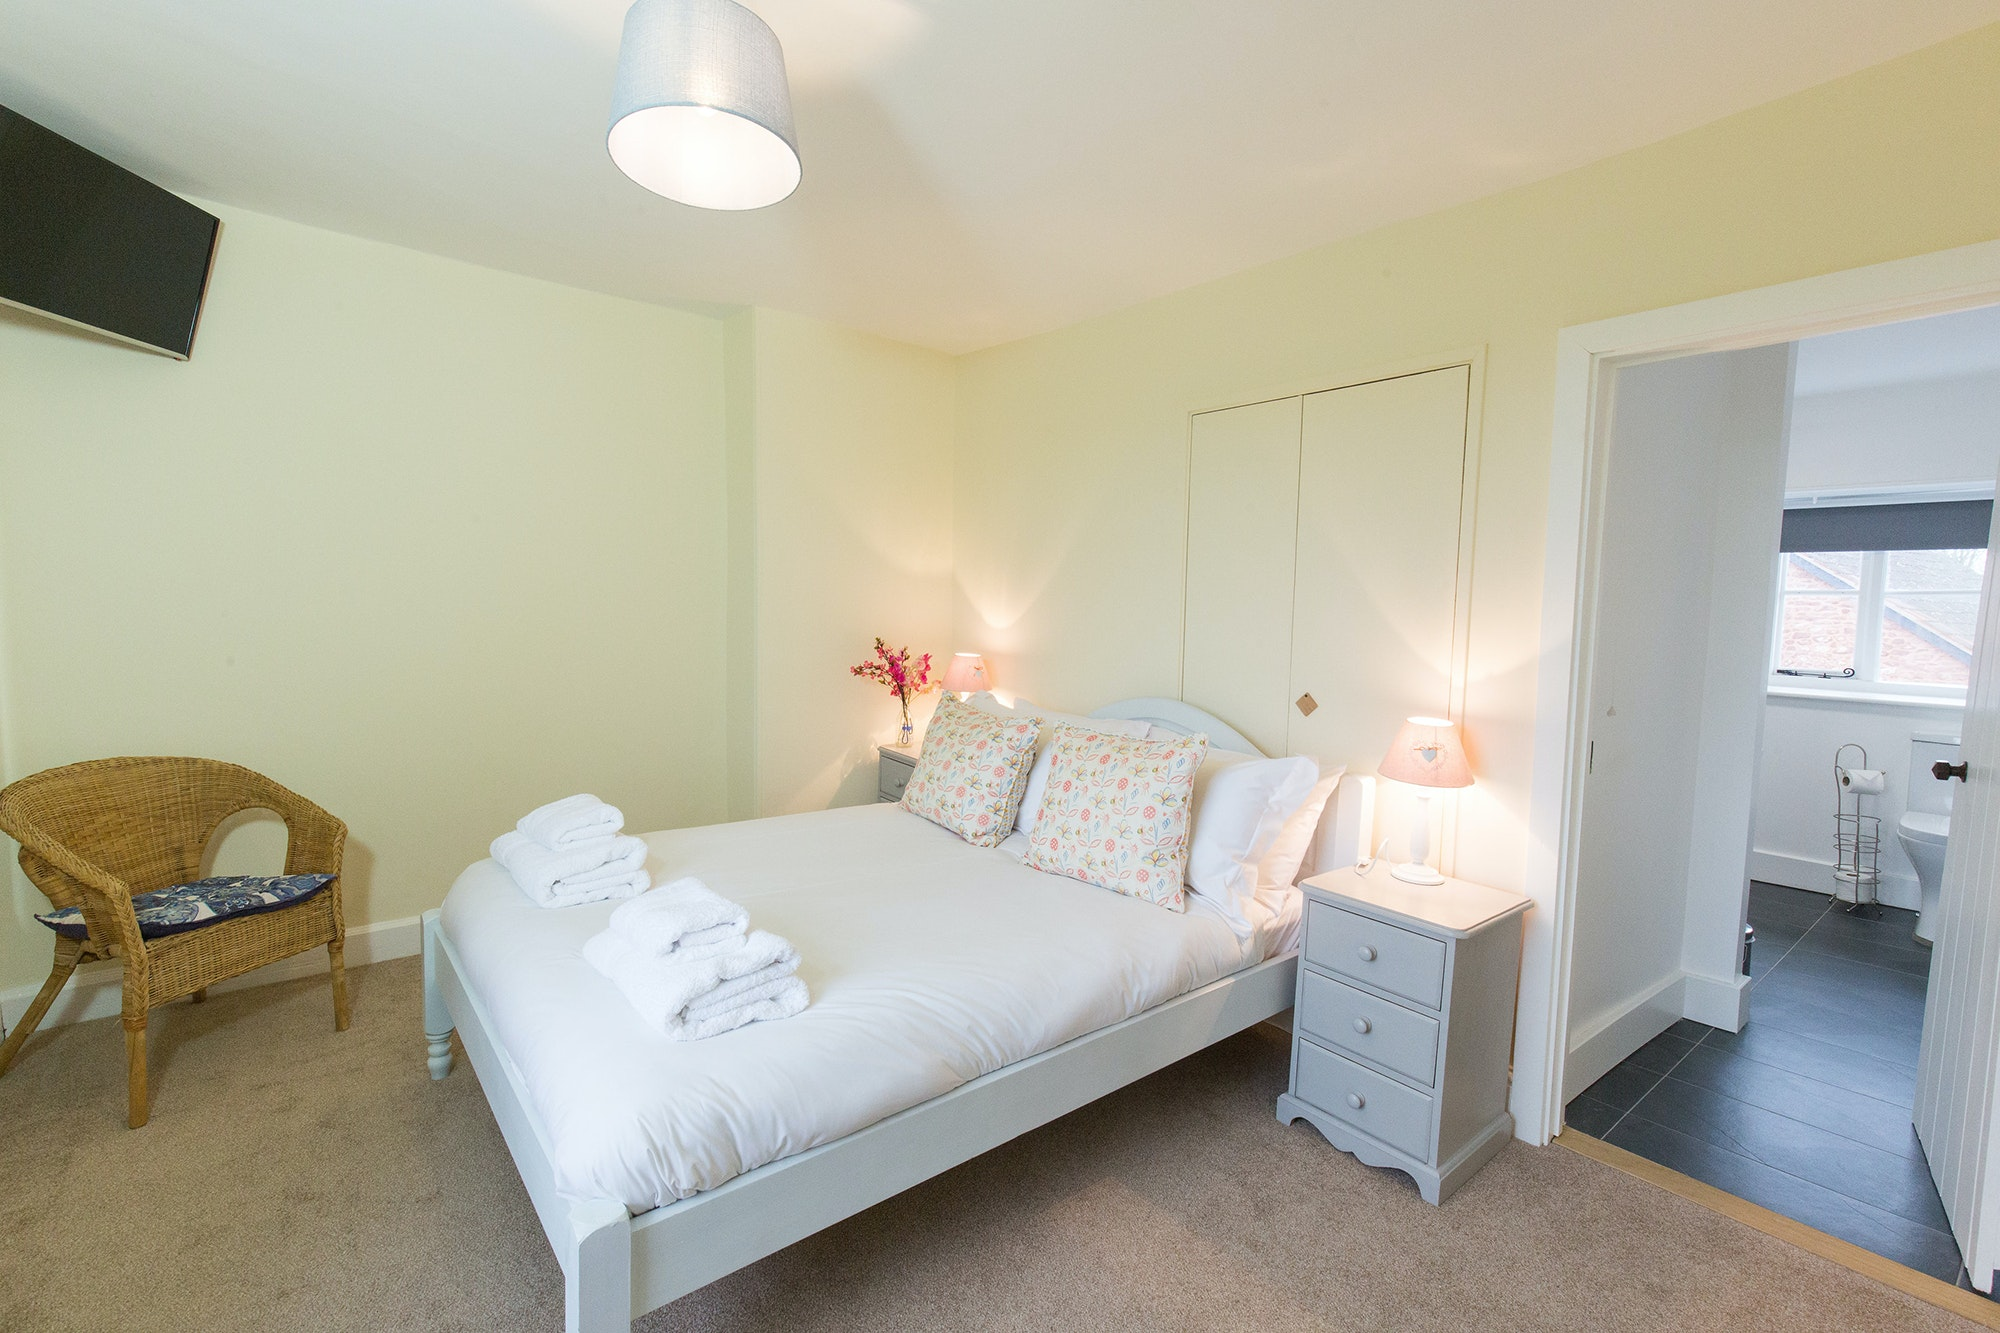 ... Pound Farm   Bedroom 2: Light And Airy, Overlooking The Front Garden